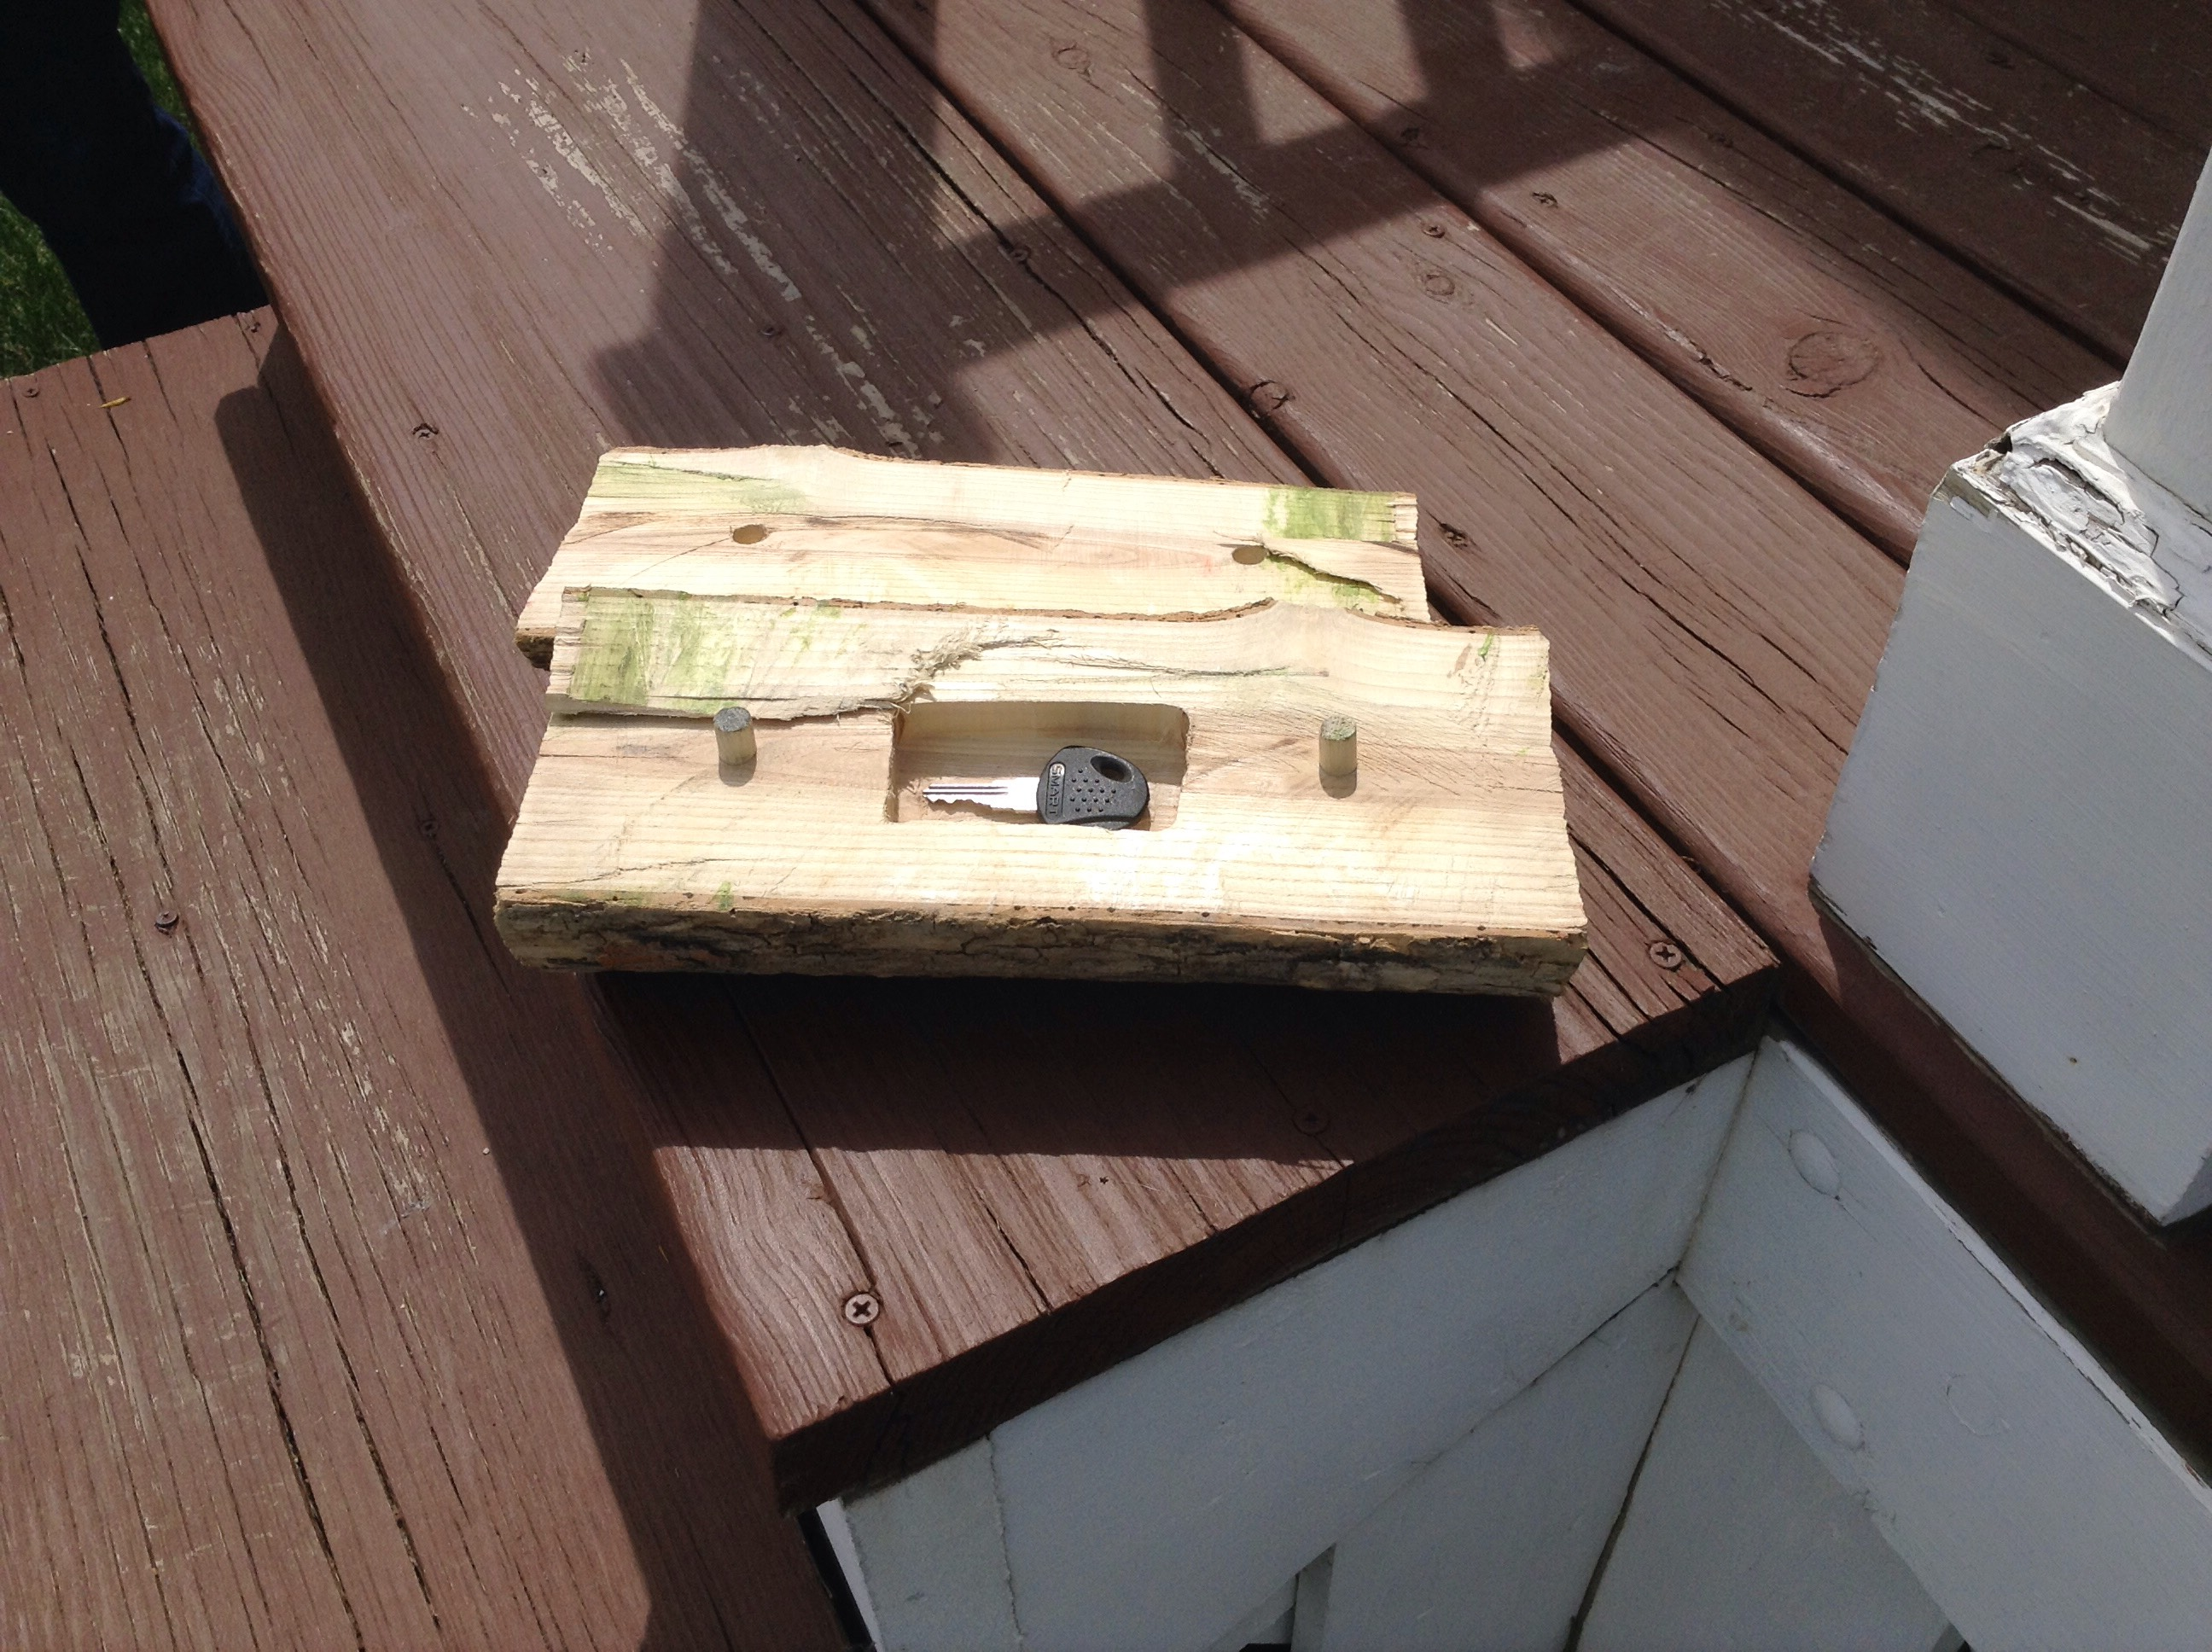 Picture of Make a Compartment in the Log With a Router